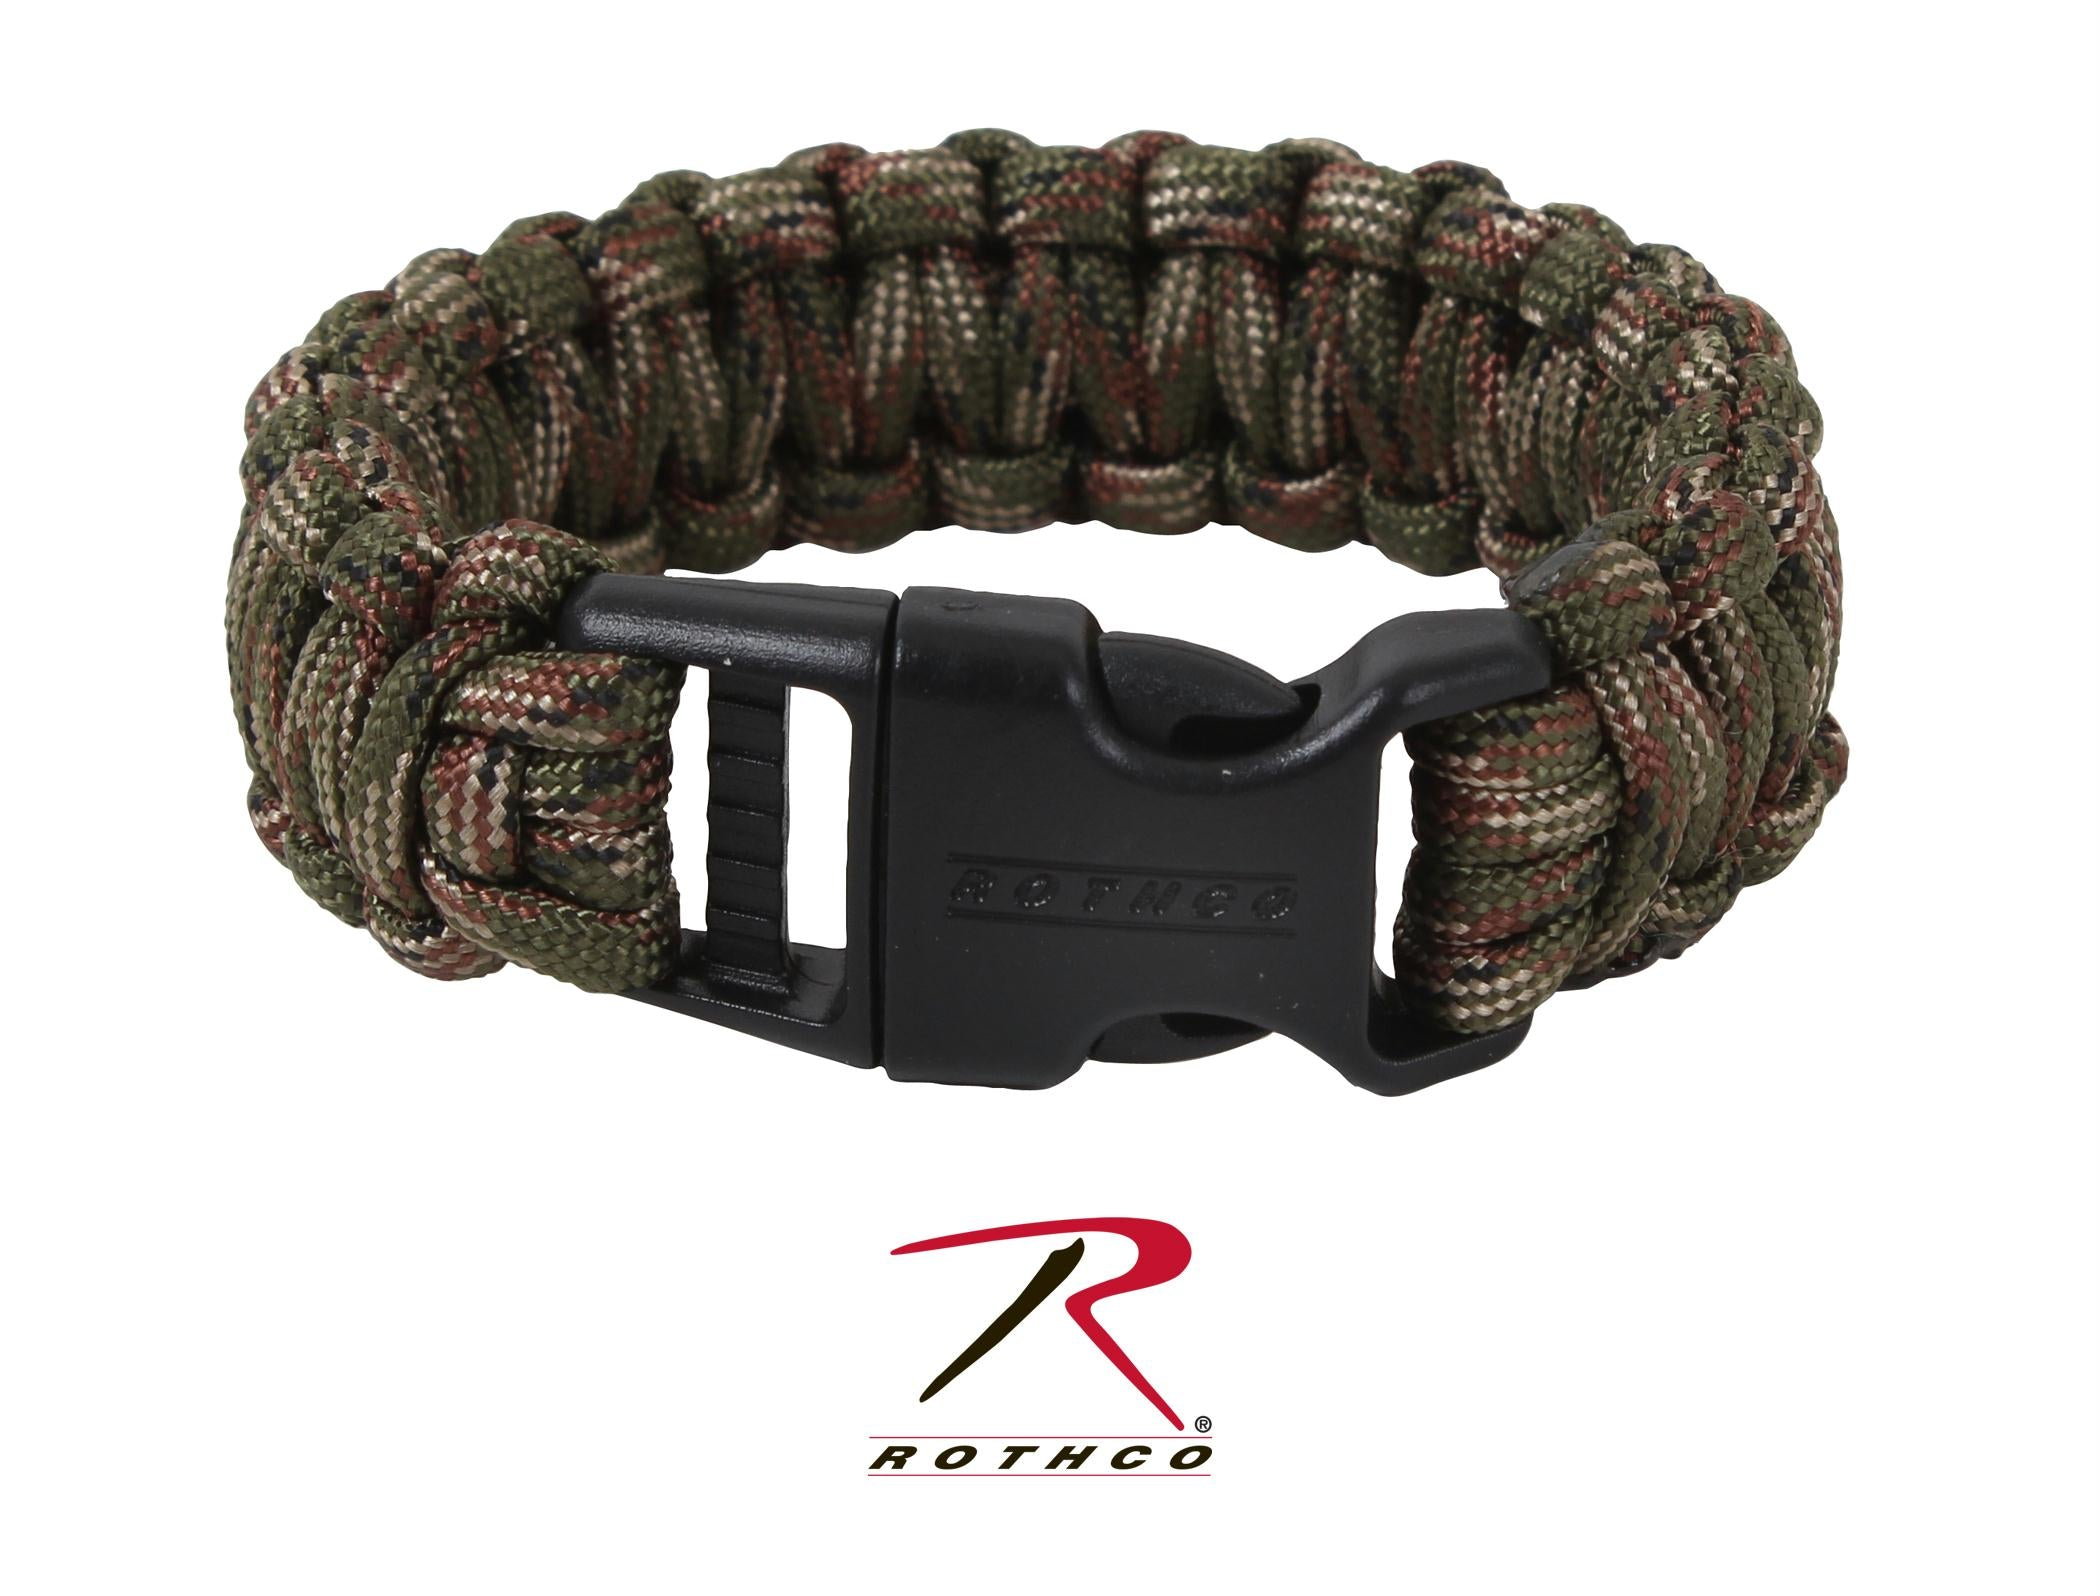 Rothco Deluxe Paracord Bracelets - Woodland Camo / 8 Inches